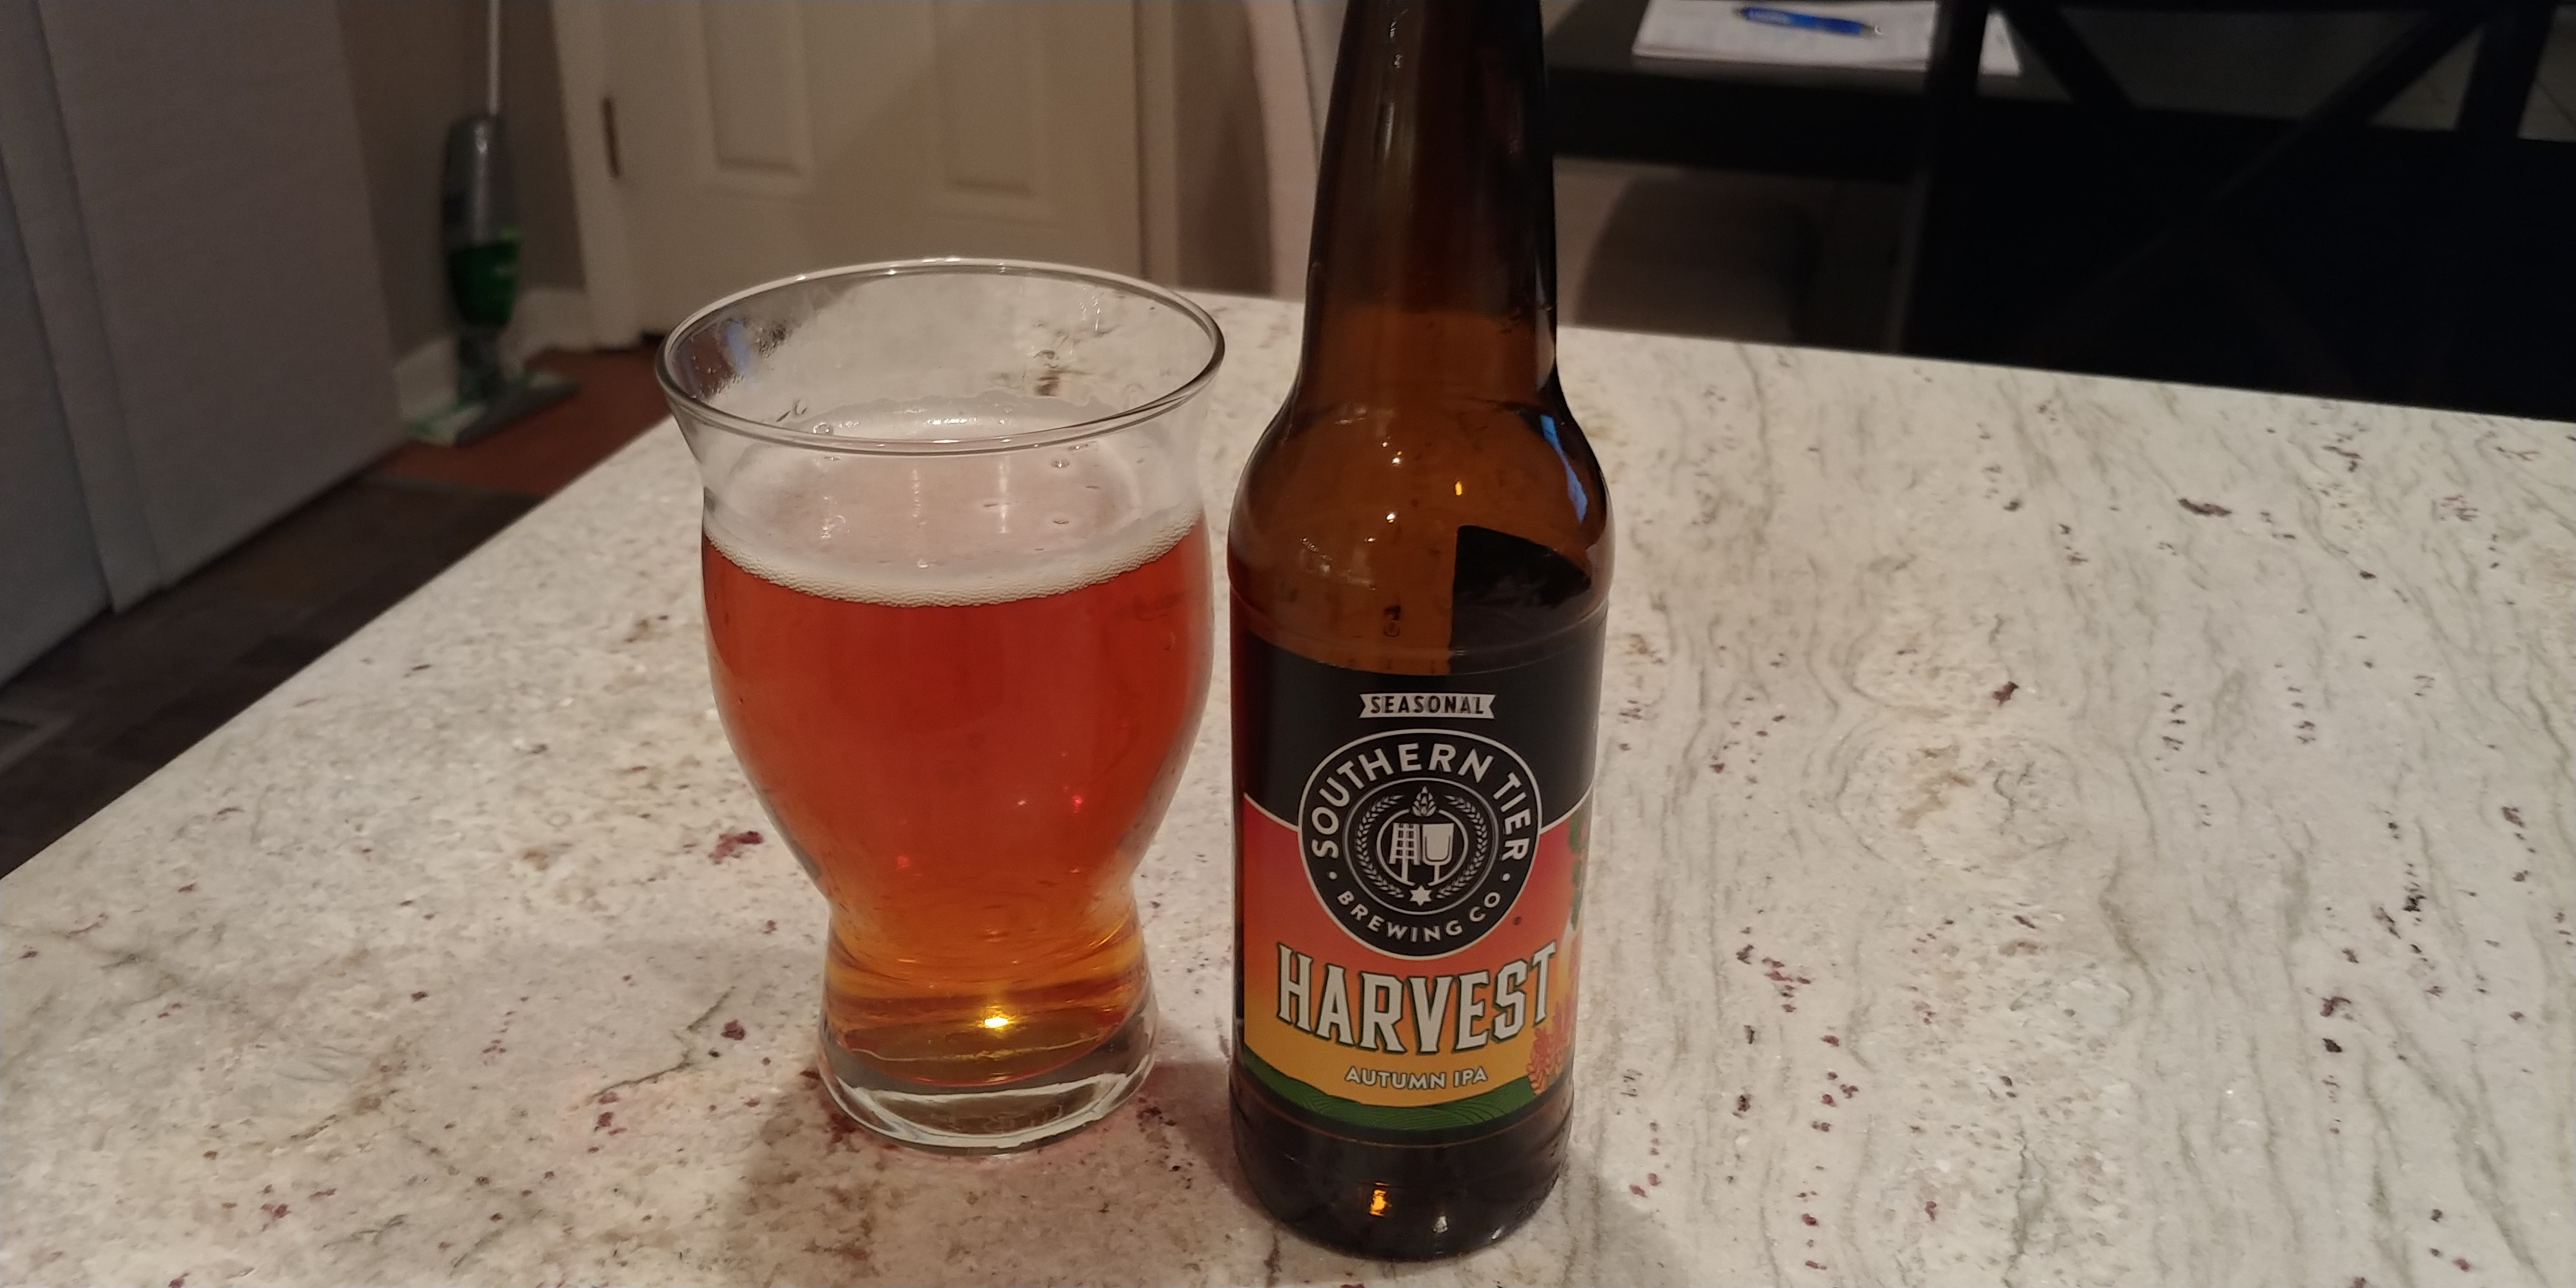 Southern Tier Brewing Co Harvest